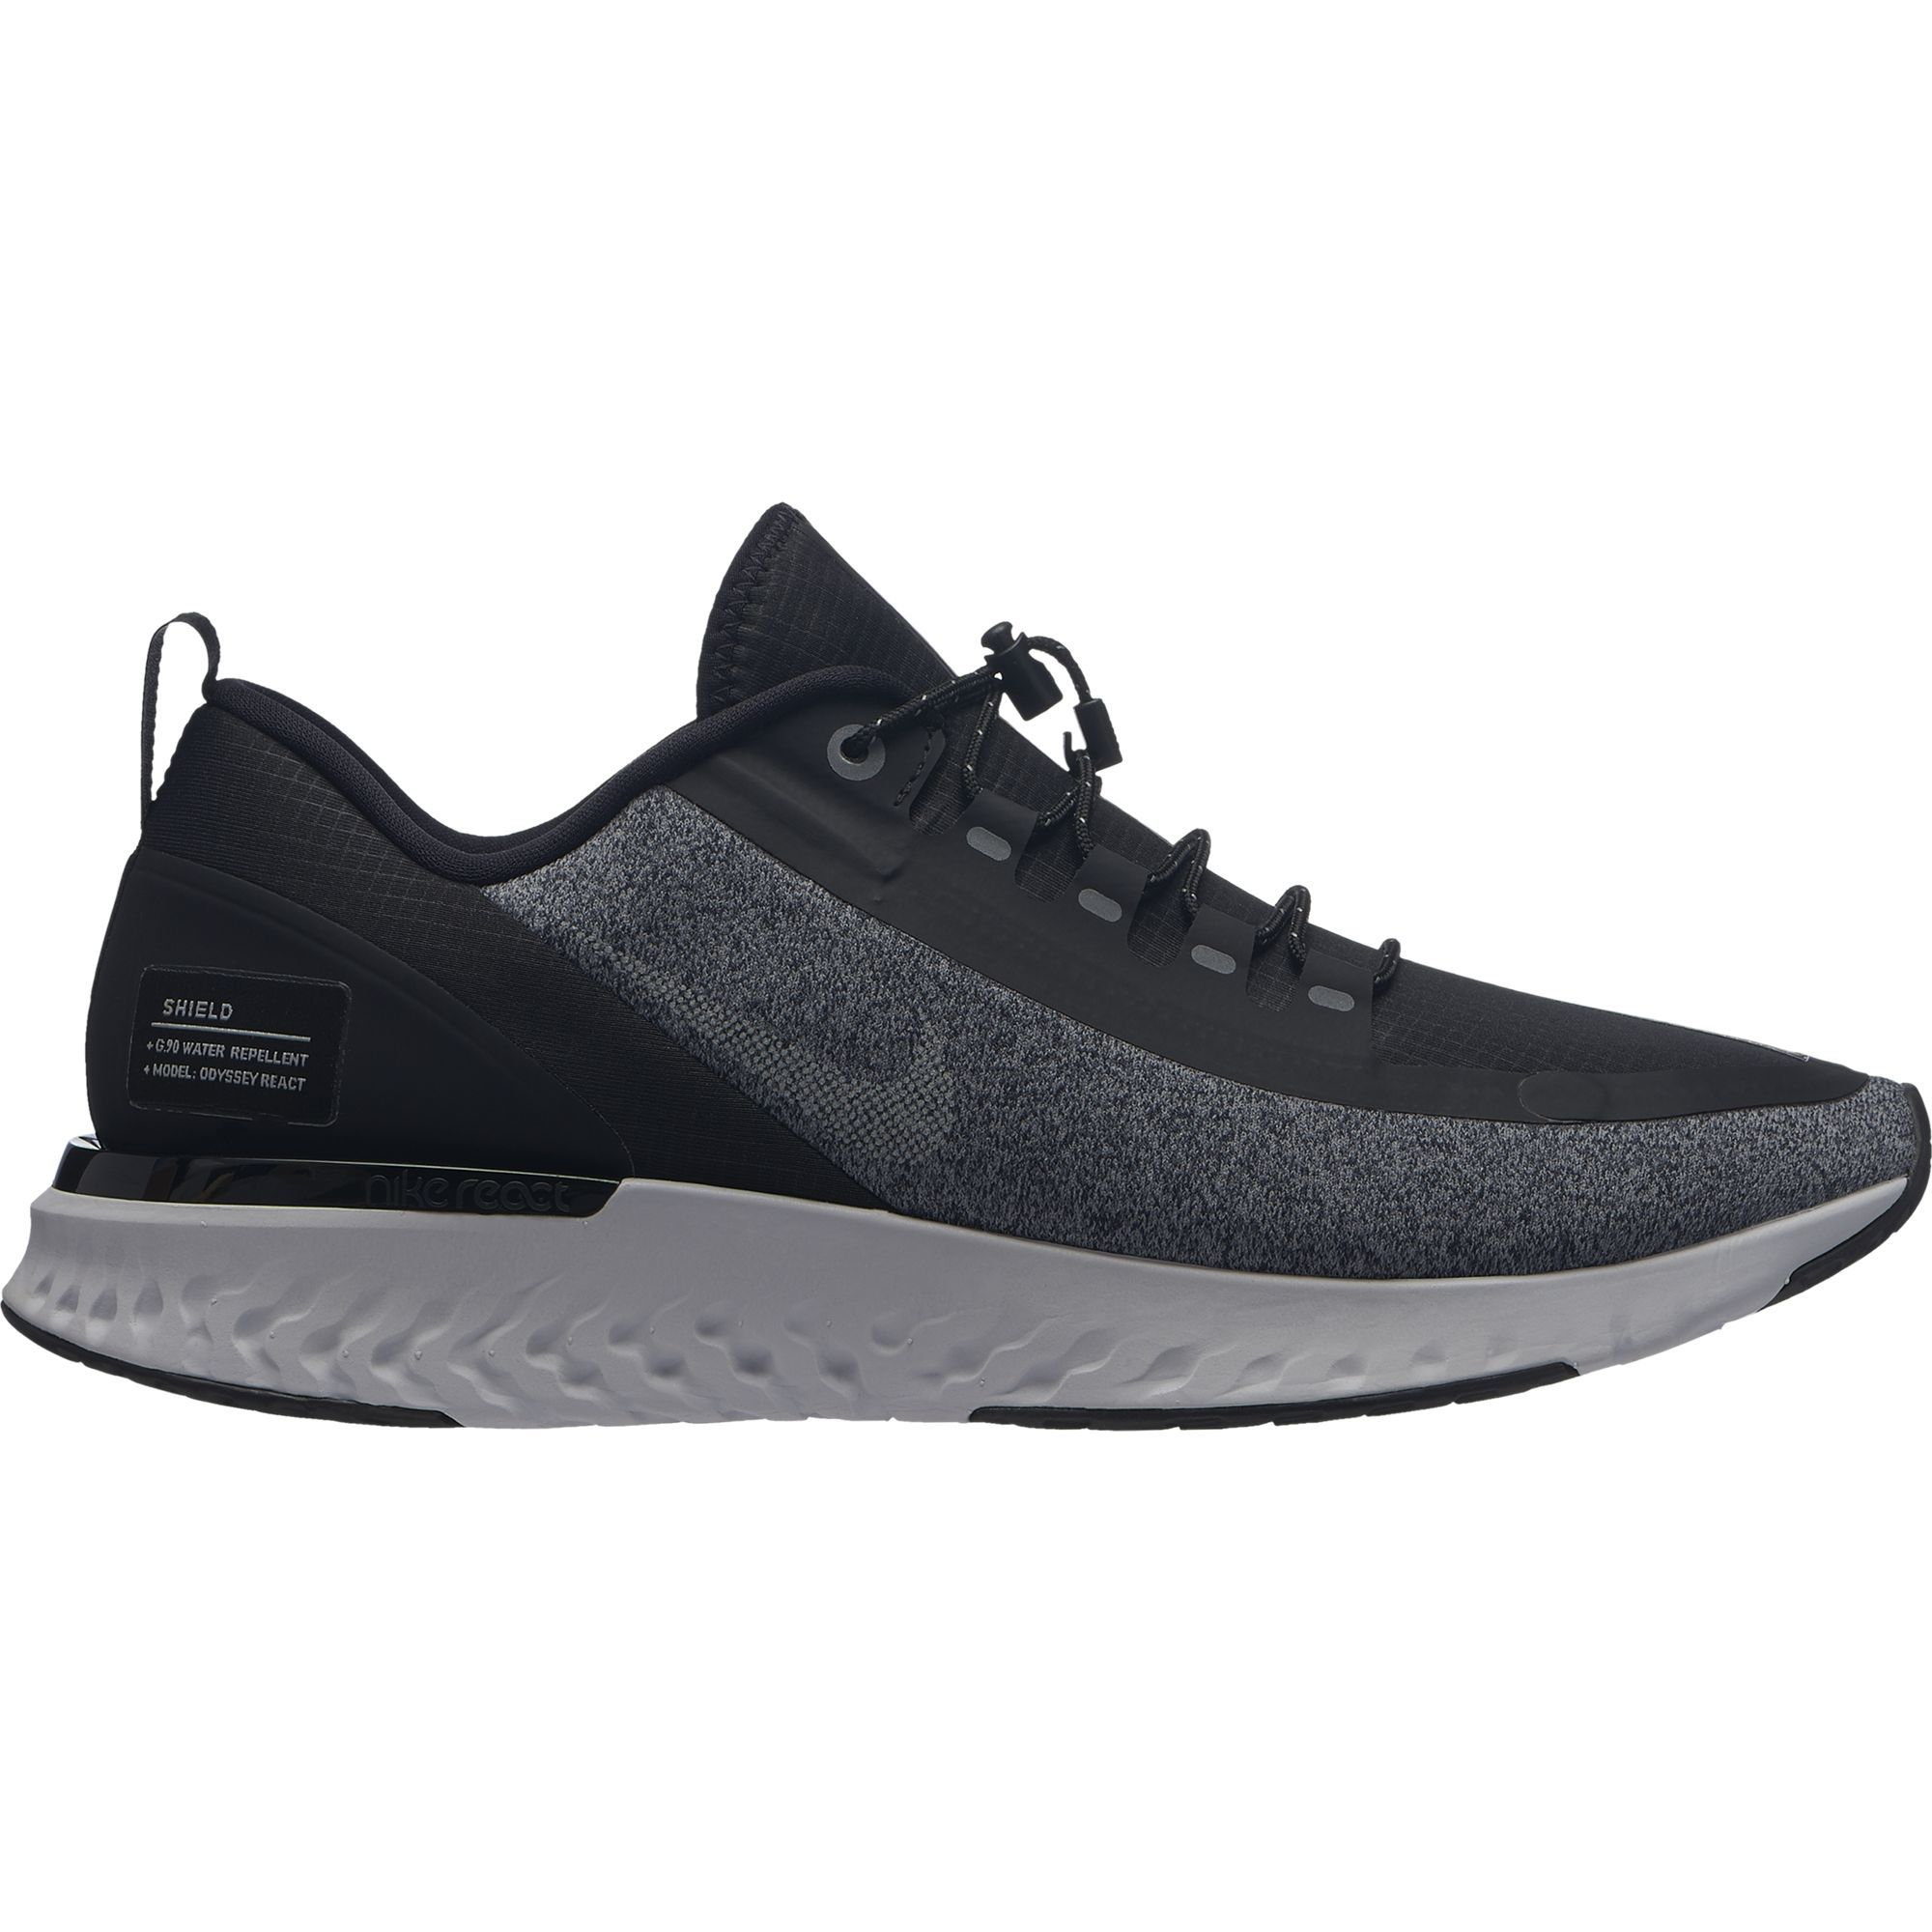 Nike Lady Odyssey React Shield in Schwarz